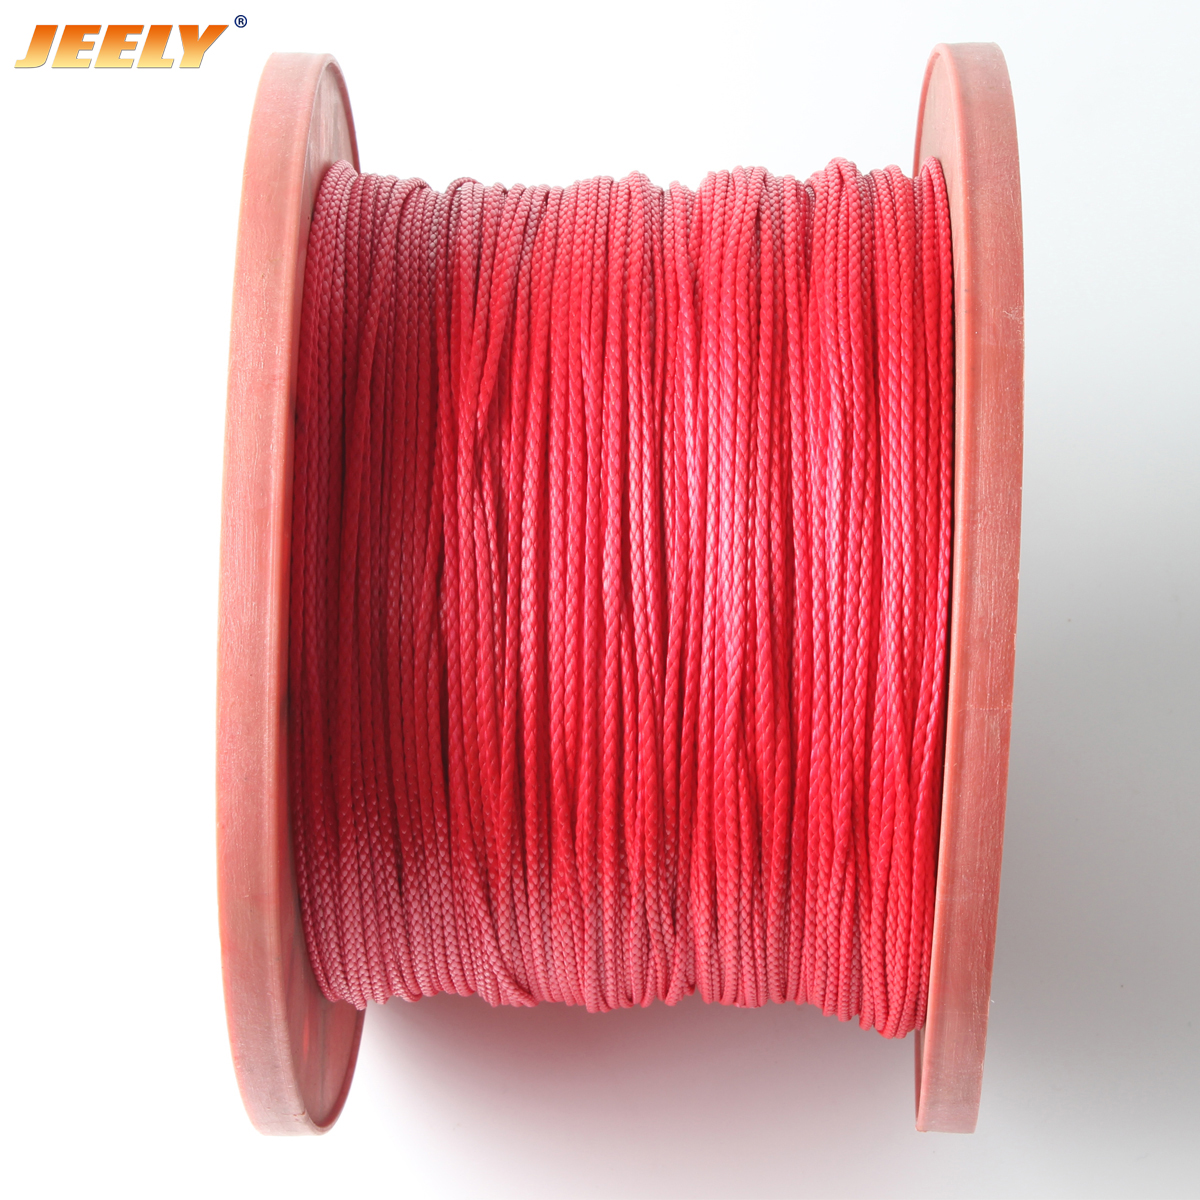 1.2mm 16strand Uhmwpe Fiber Braided Fishing line